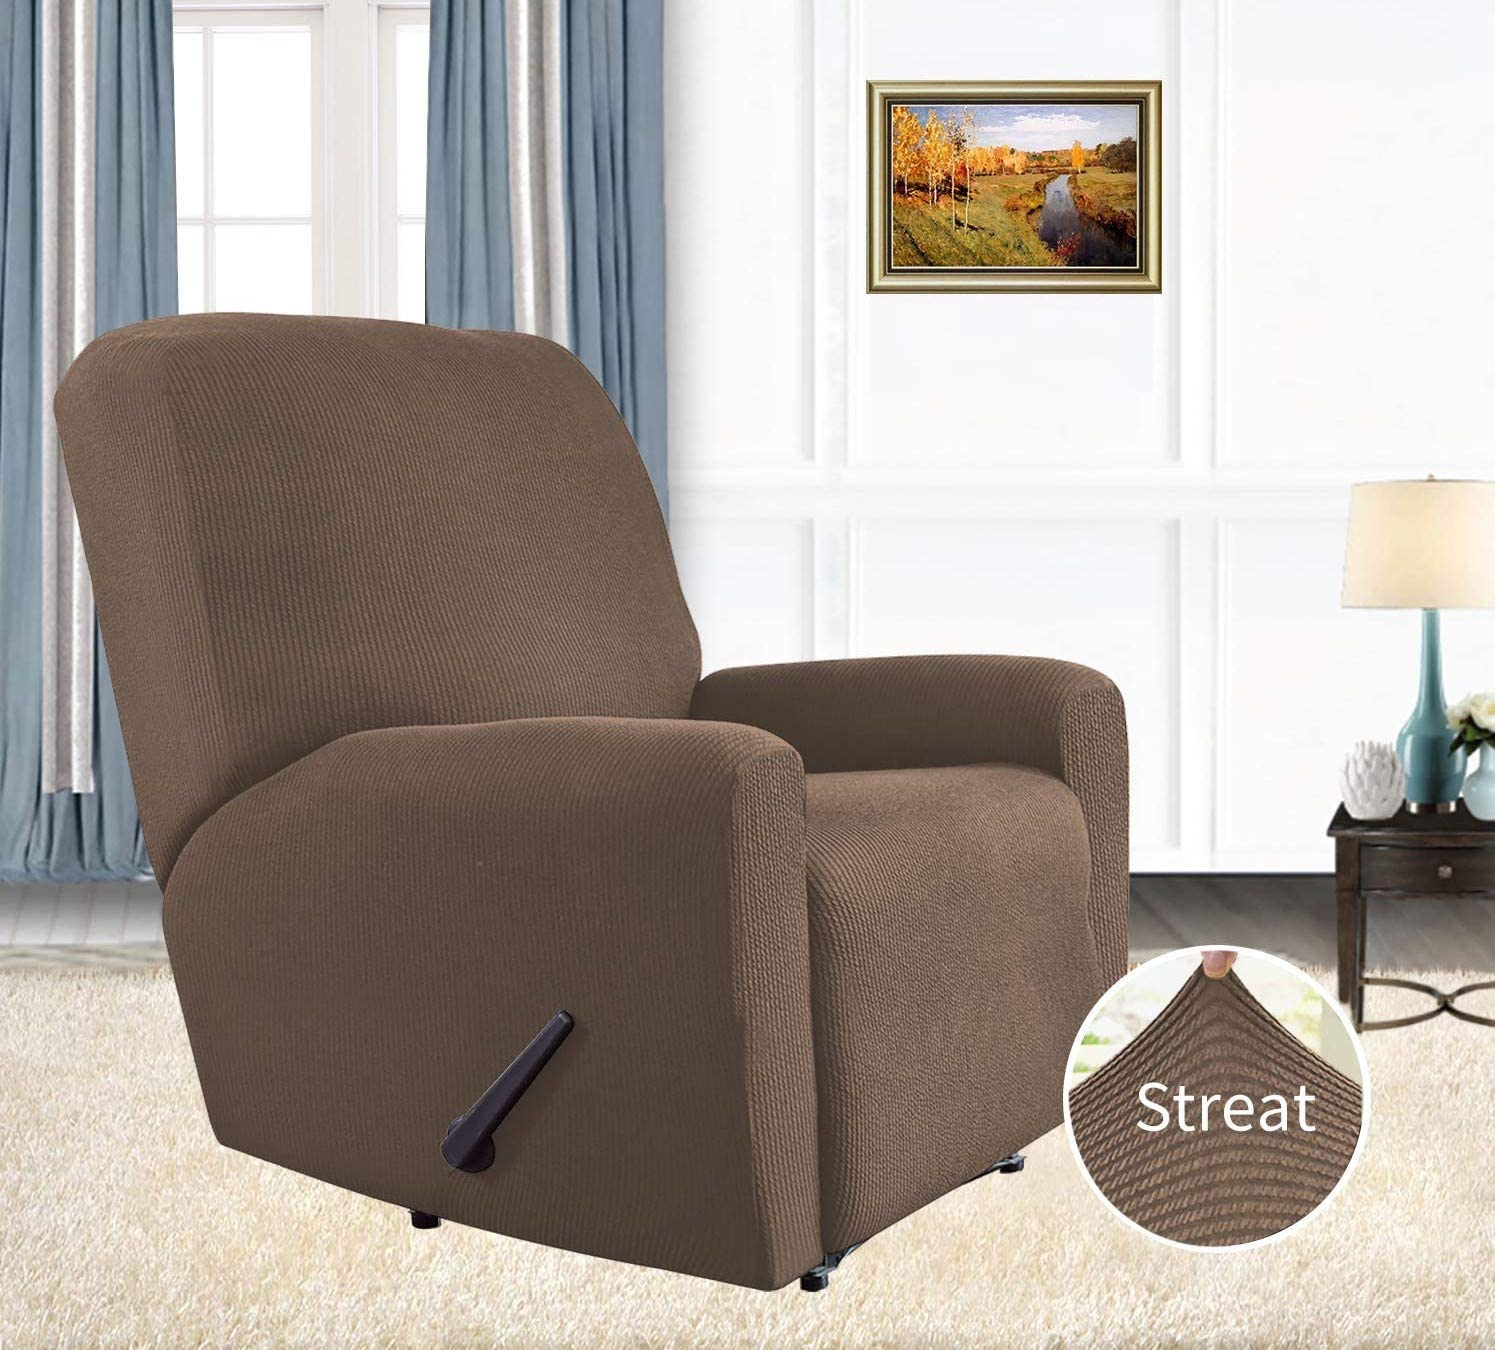 Camel Linens And More➤1 Piece Jacquard Recliner Stretch Slipcover Fabric Small ChecksFurniture Protector with Elastic Bottom➤with Side Pocket,Sturdy Fabric Slipcover,Pets,Kids,Children,Dog,Cat ➤